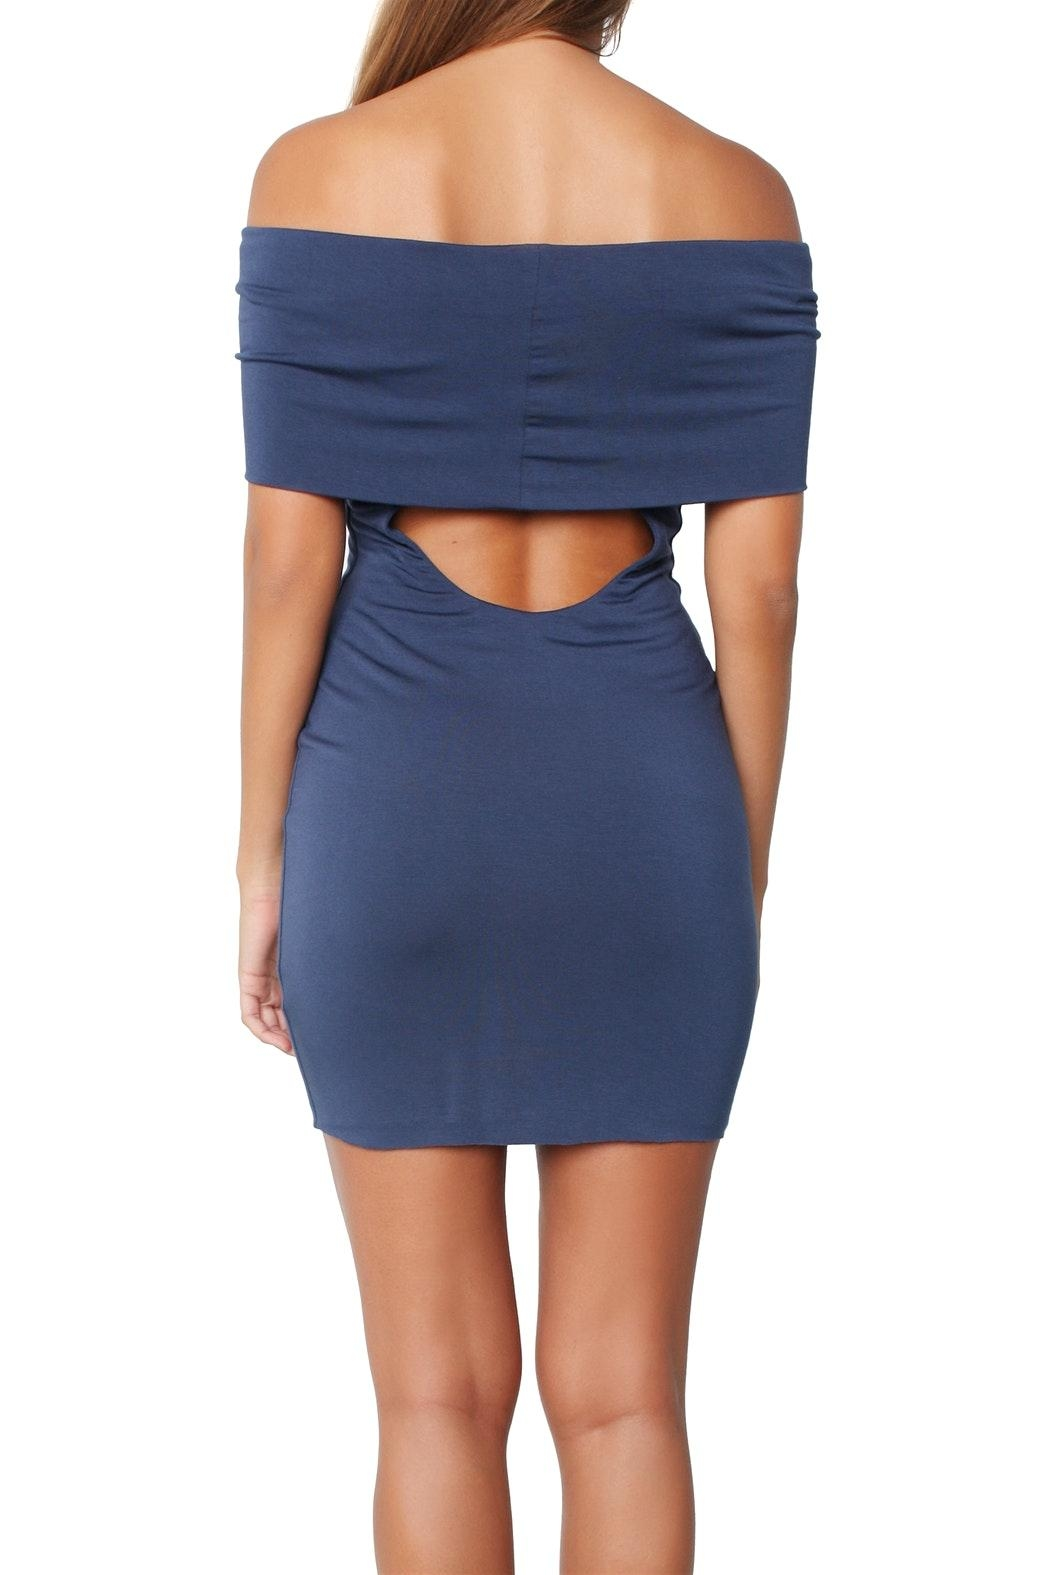 Bailey 44 Hot-Diggin Blue Dress - Back Cropped Image